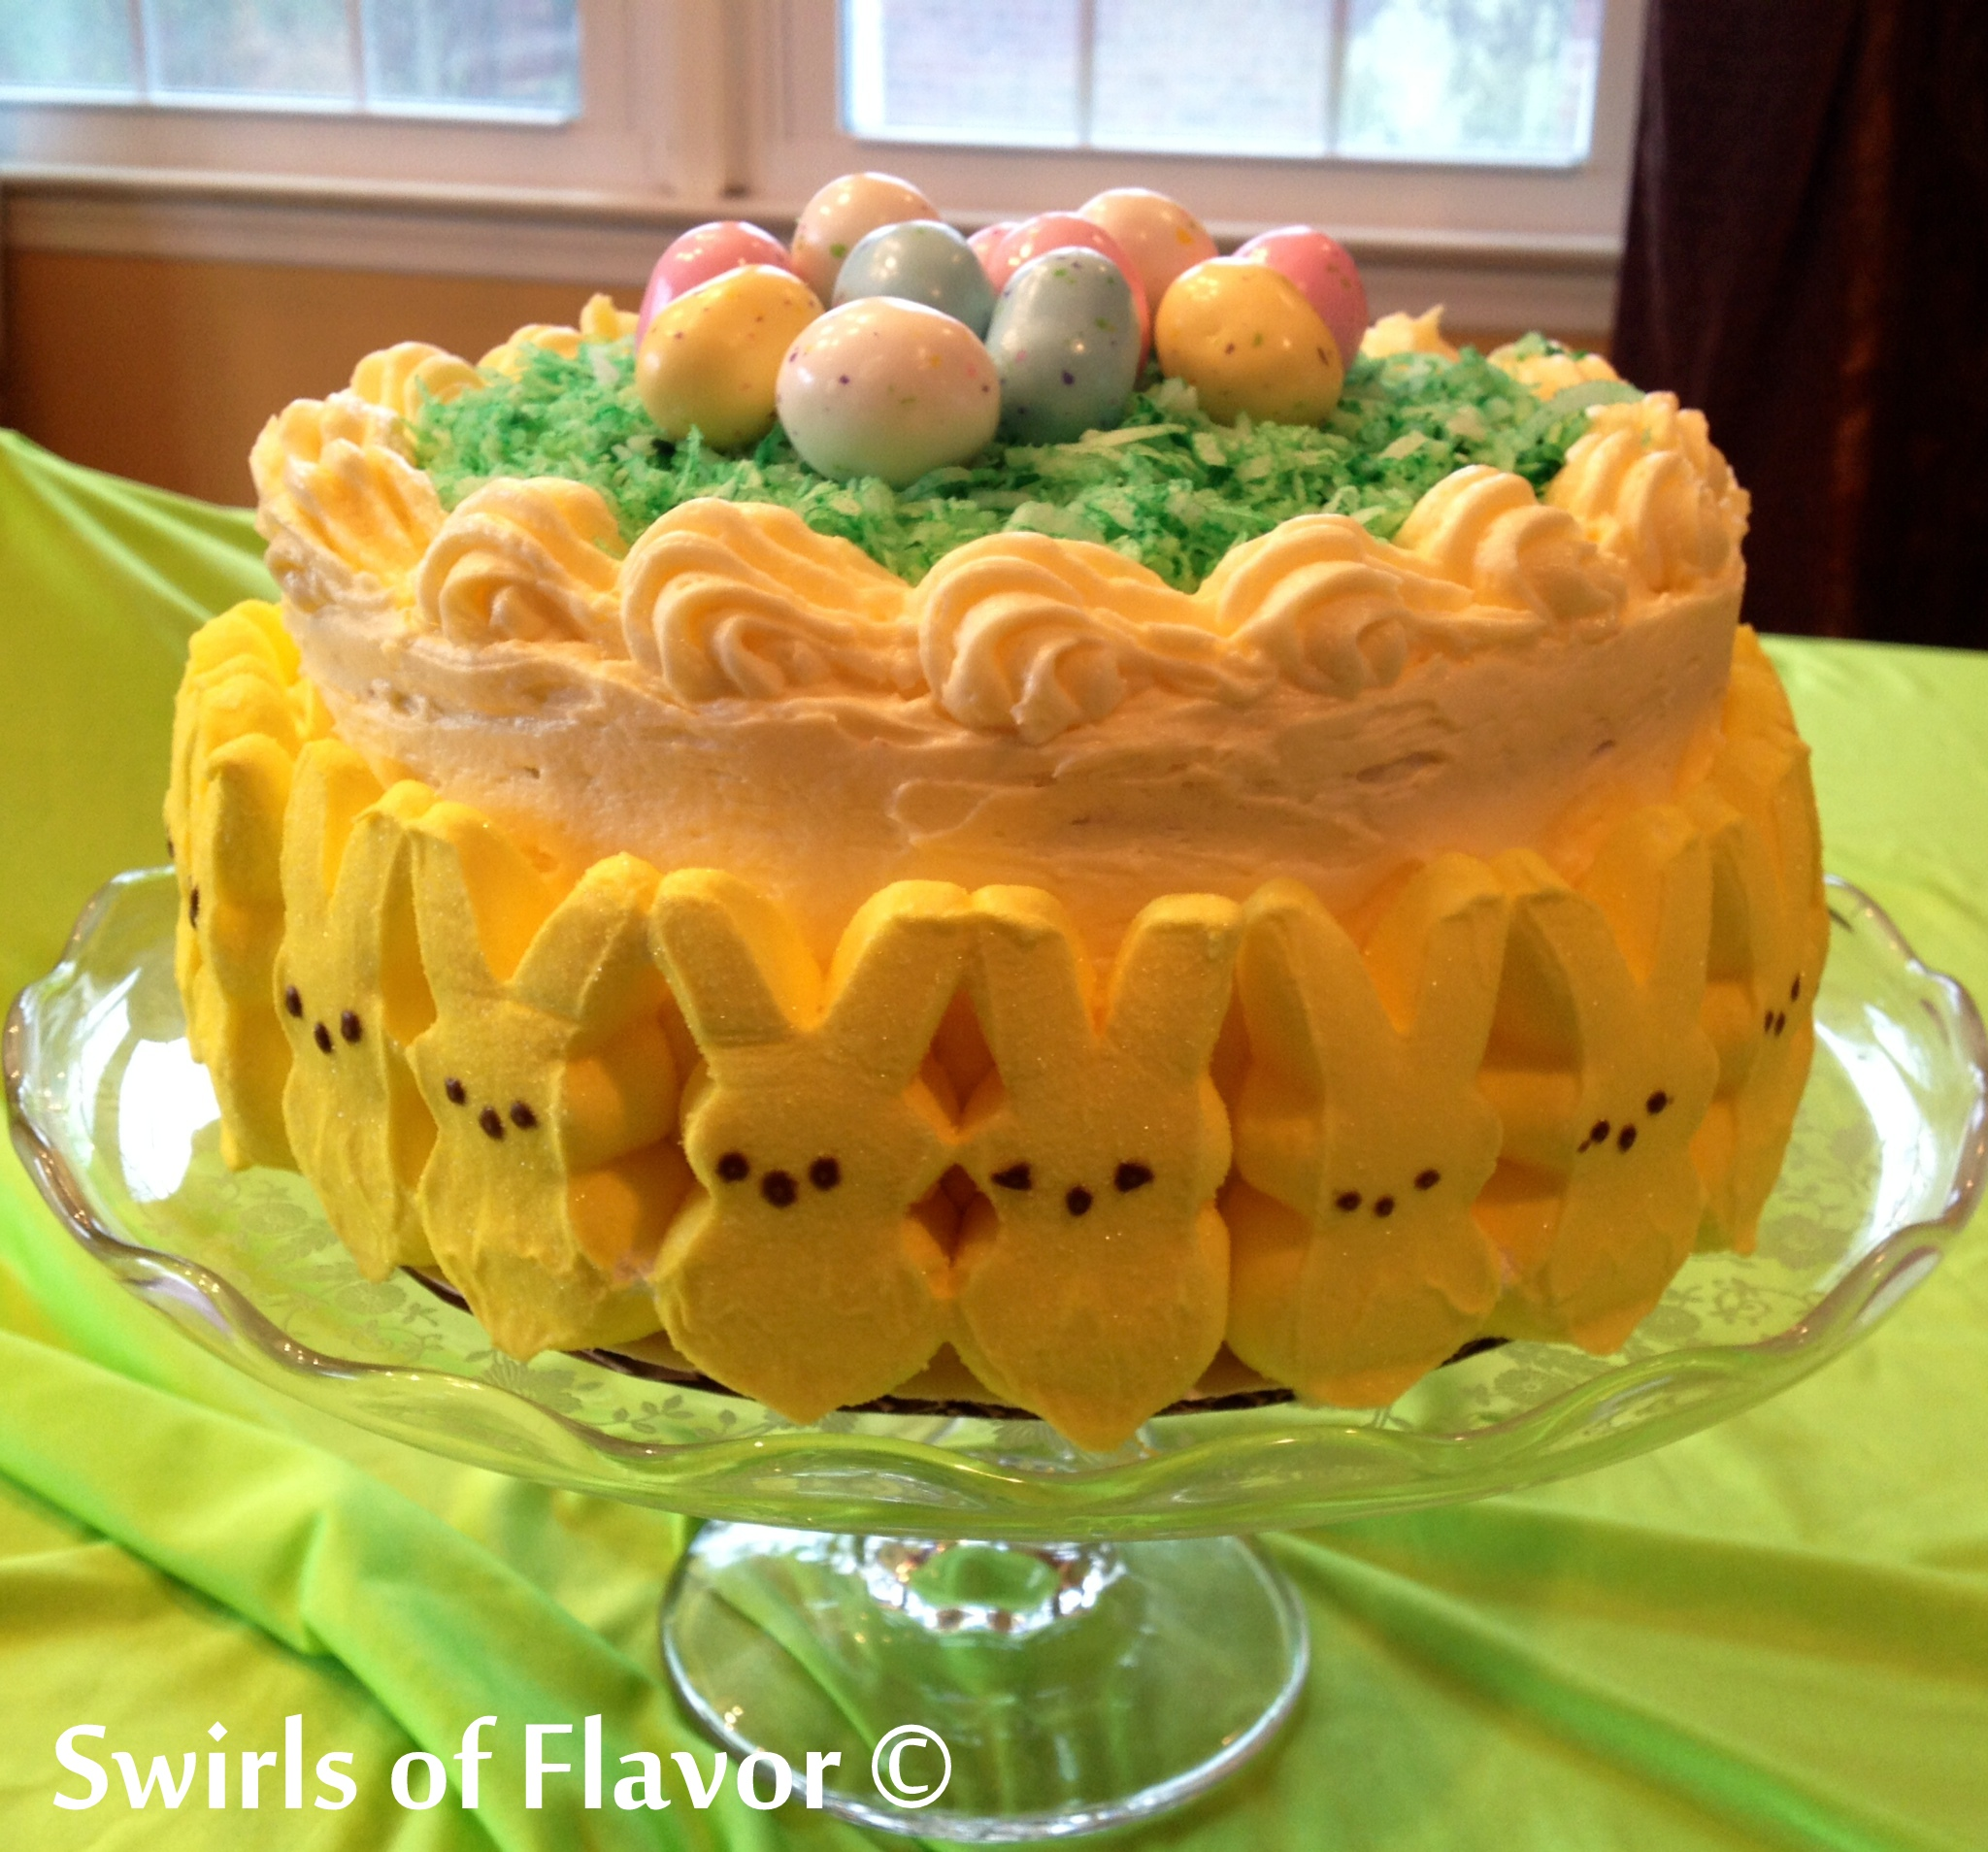 lemon layer cake with Easter decorations on a cake stand